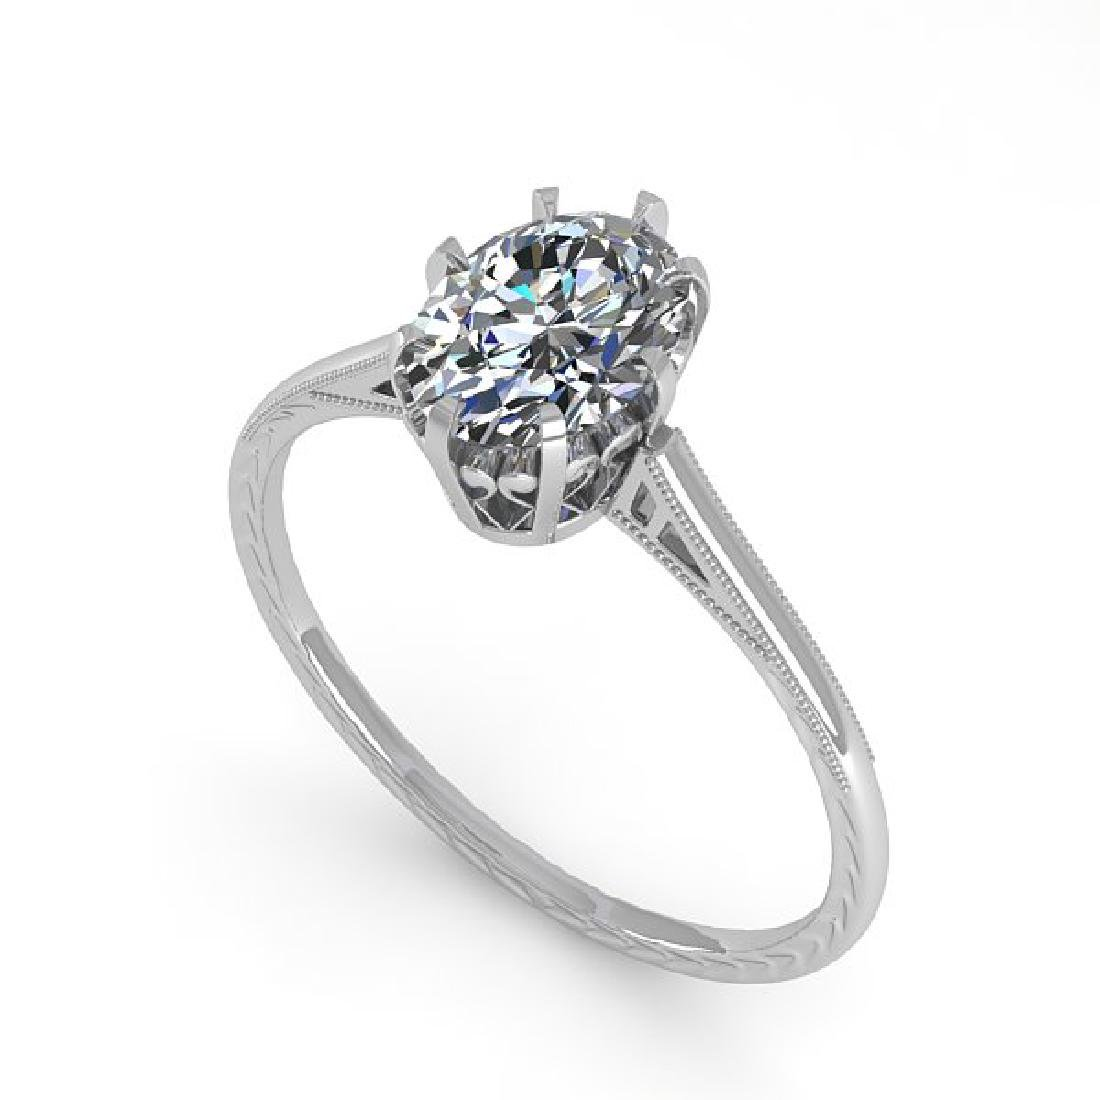 1.0 CTW VS/SI Oval Diamond Solitaire Ring 14K White - 2